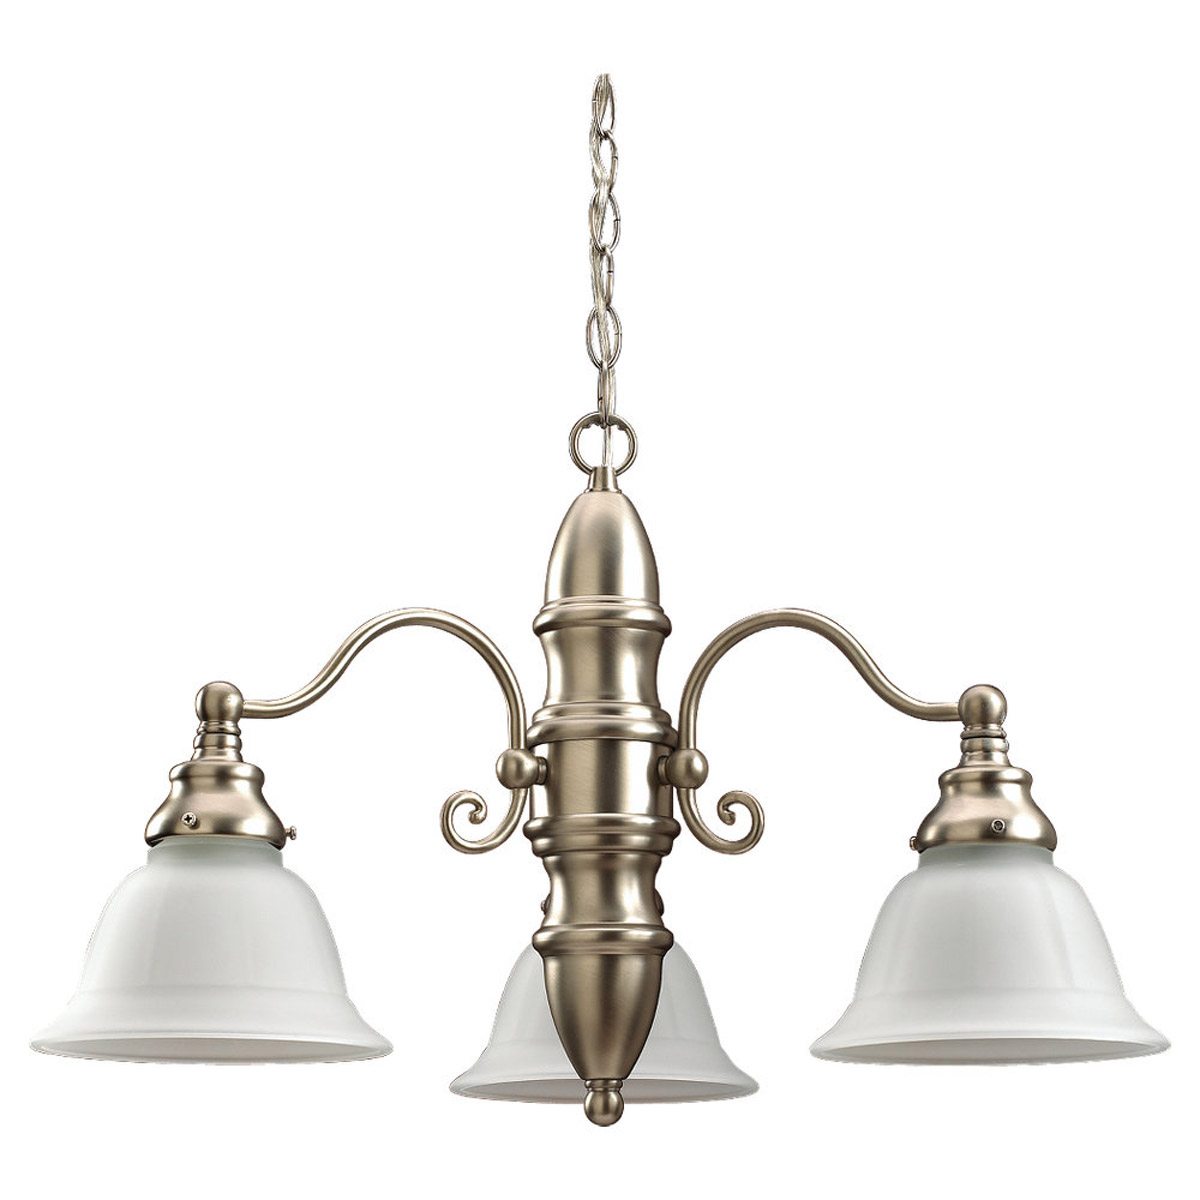 Sea Gull Lighting Canterbury 3 Light Chandelier in Brushed Nickel 31050-962 photo